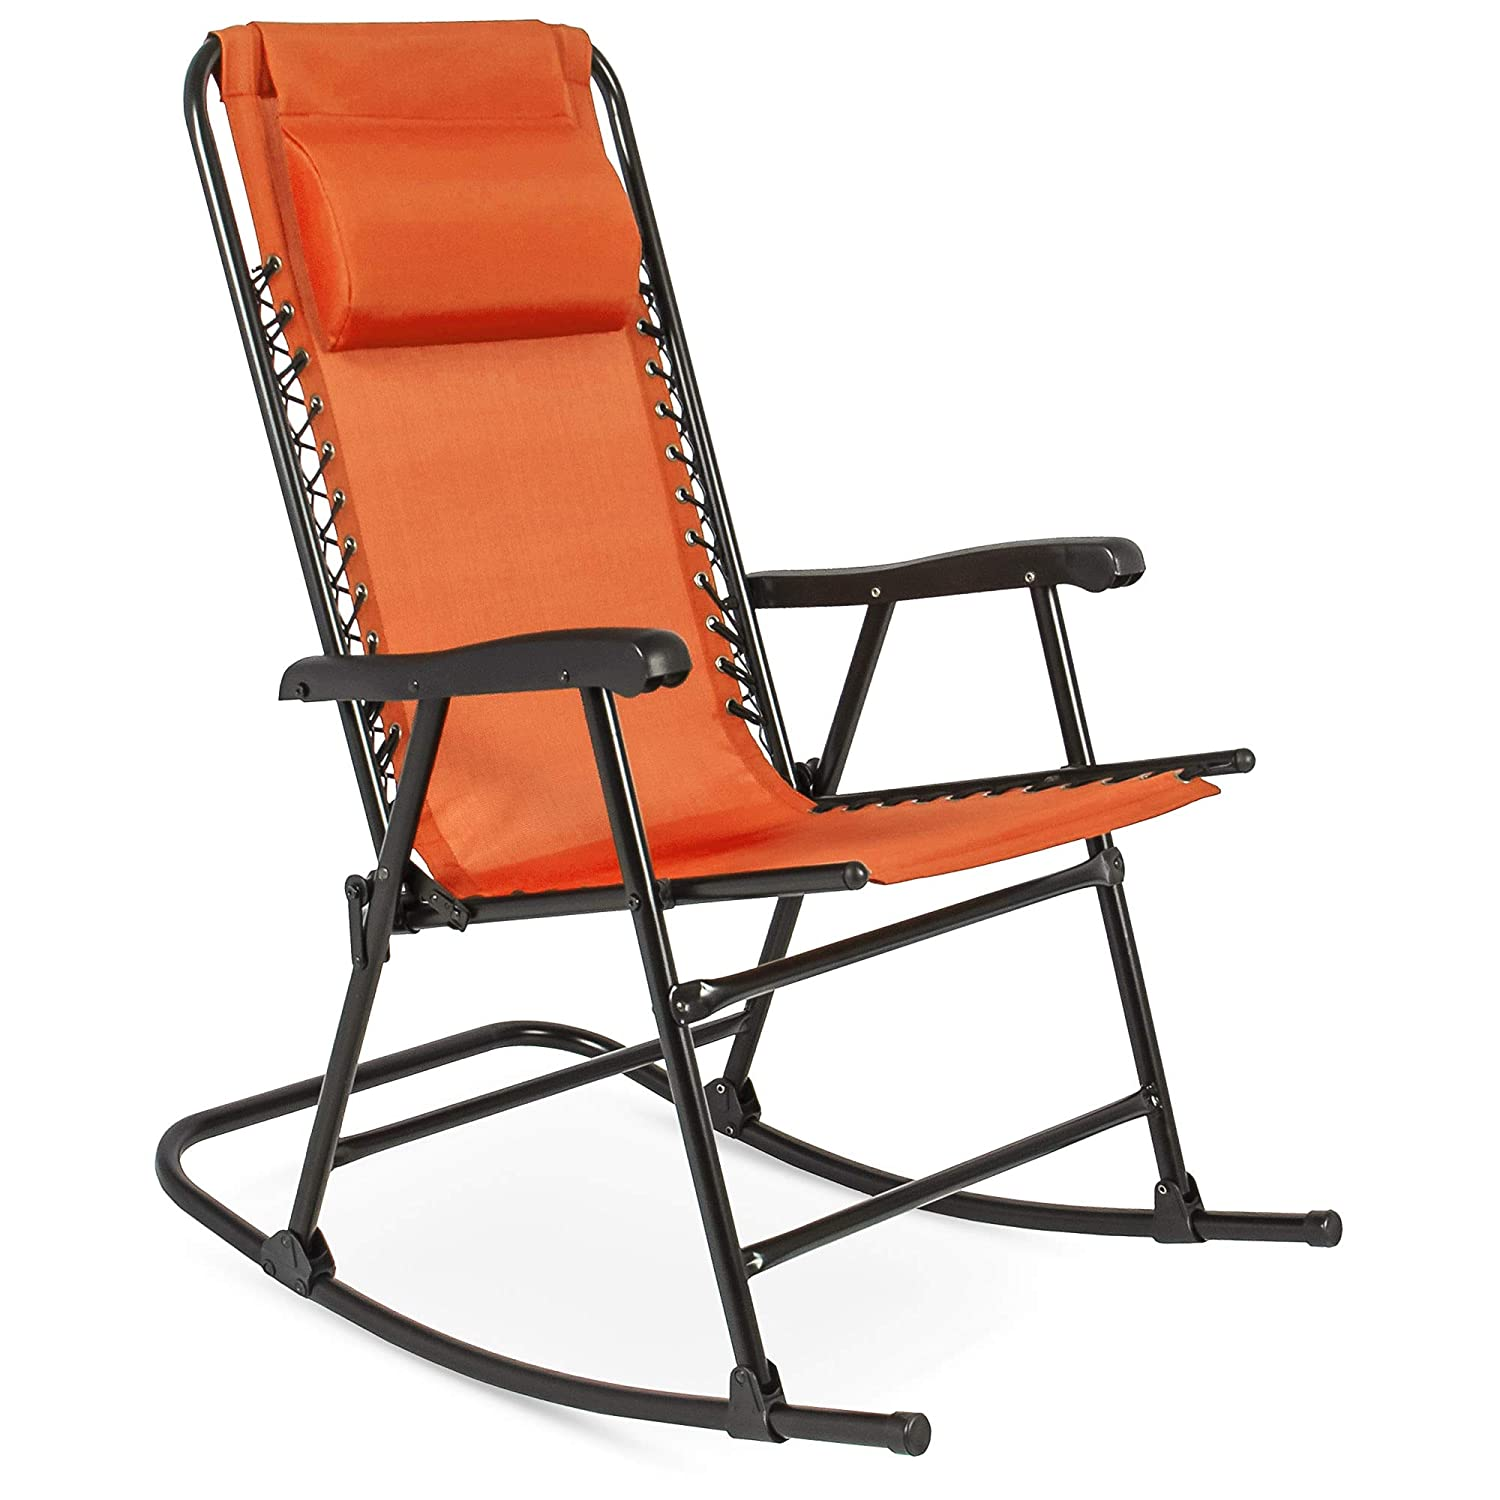 Remarkable Best Choice Products Foldable Zero Gravity Rocking Patio Recliner Chair Orange Gmtry Best Dining Table And Chair Ideas Images Gmtryco